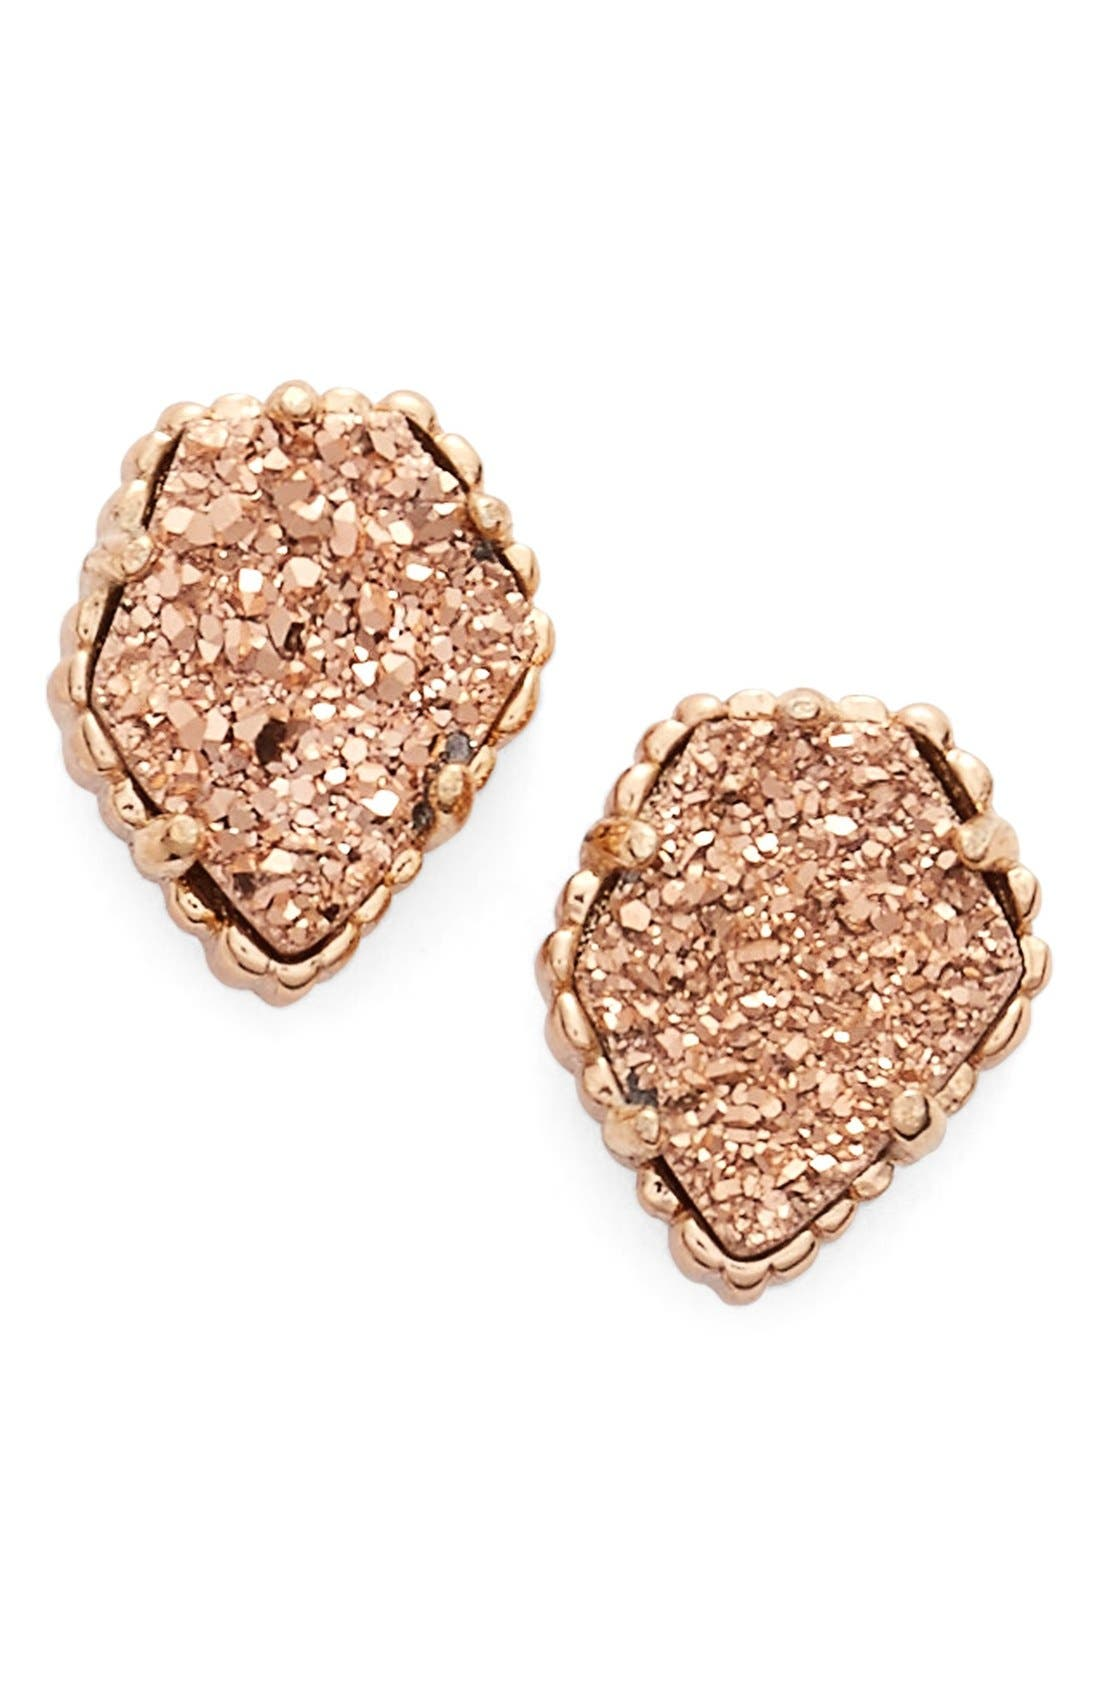 [Sponsored]White Gold Studs made with Crystal Round Stud Earrings for Women Girls DJl0jkms